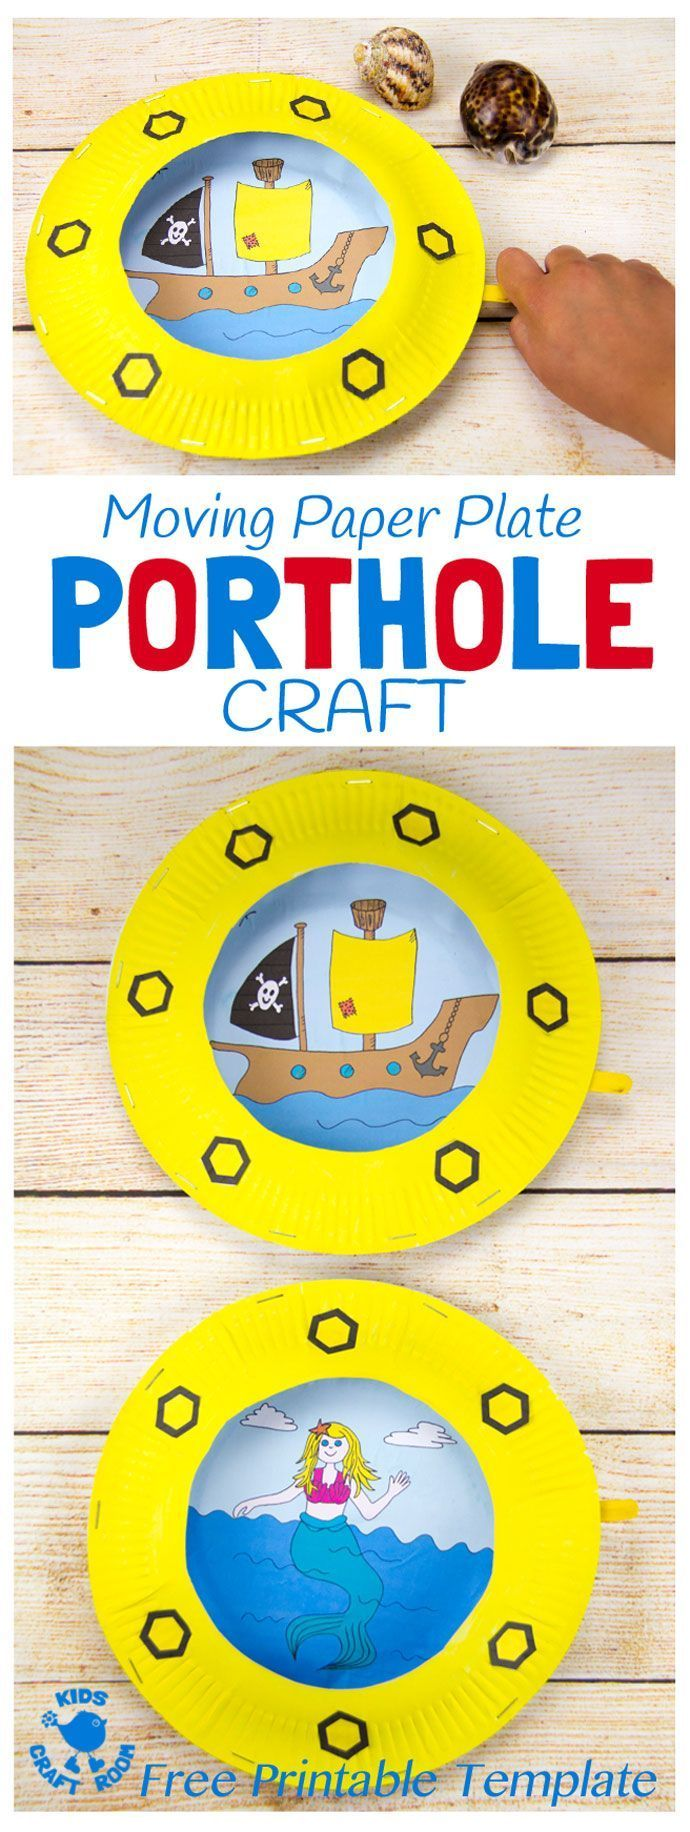 PAPER PLATE PORTHOLE CRAFT - a fantastic ocean craft for kids that love pirates and mermaids. This interactive moving paper plate craft is so fun! Wiggle the handle to make the ocean scene bob up and down like real waves! An exciting Summer craft for kids. (Free black & white and full colour printables available.)